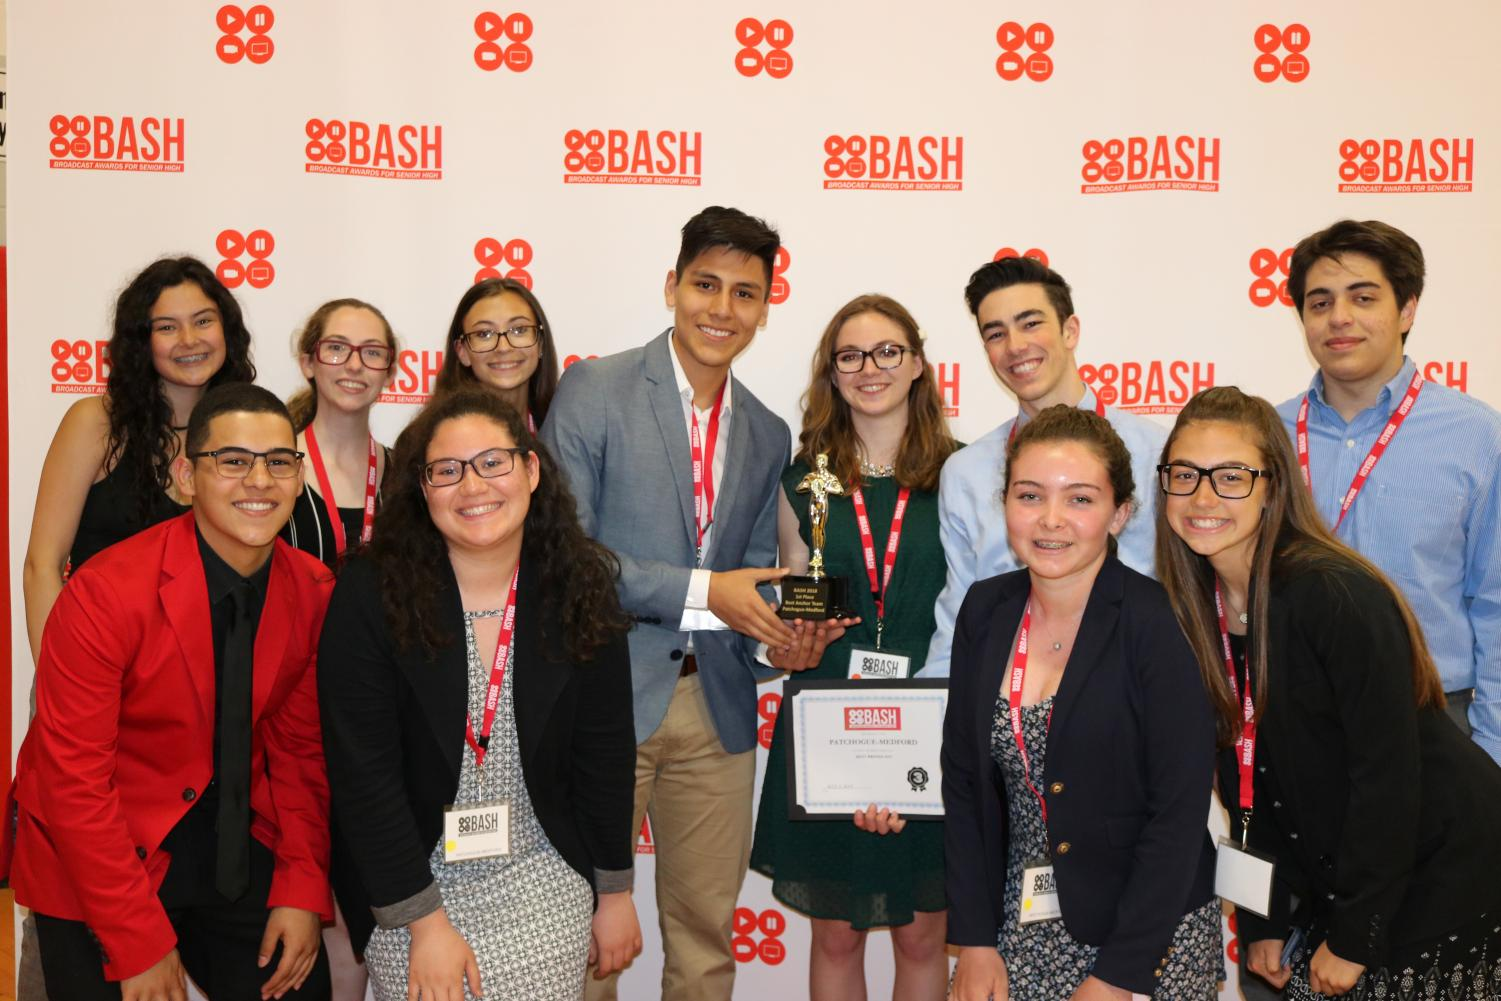 Raider TV team poses at BASH with their awards!